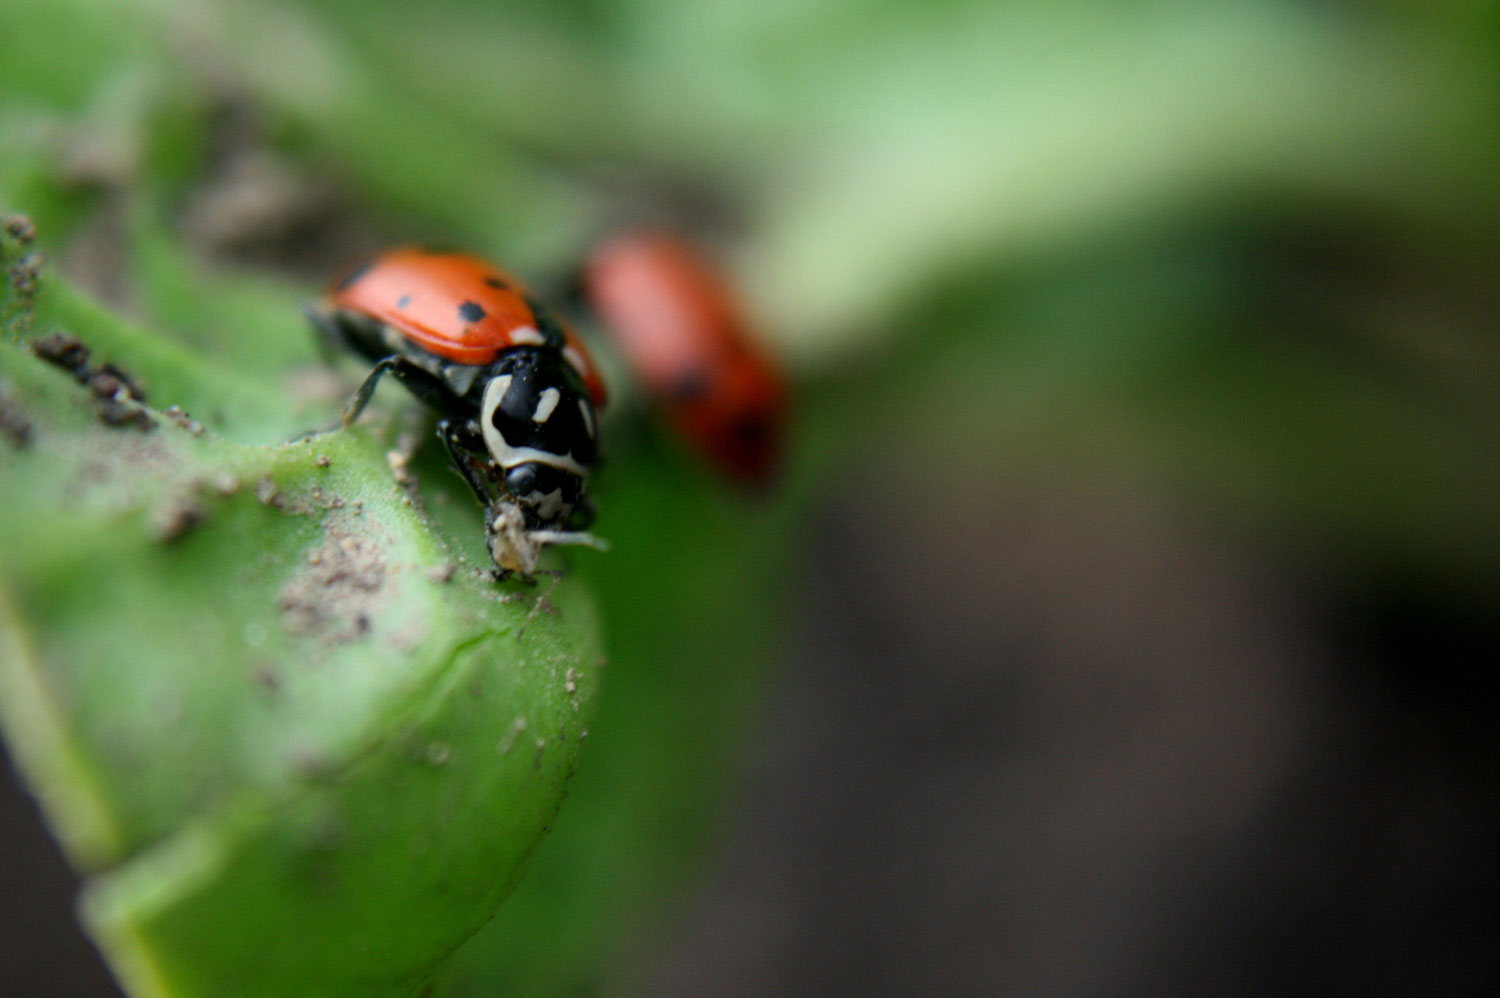 As Global Insect Populations Decline, Crop Pests May Not